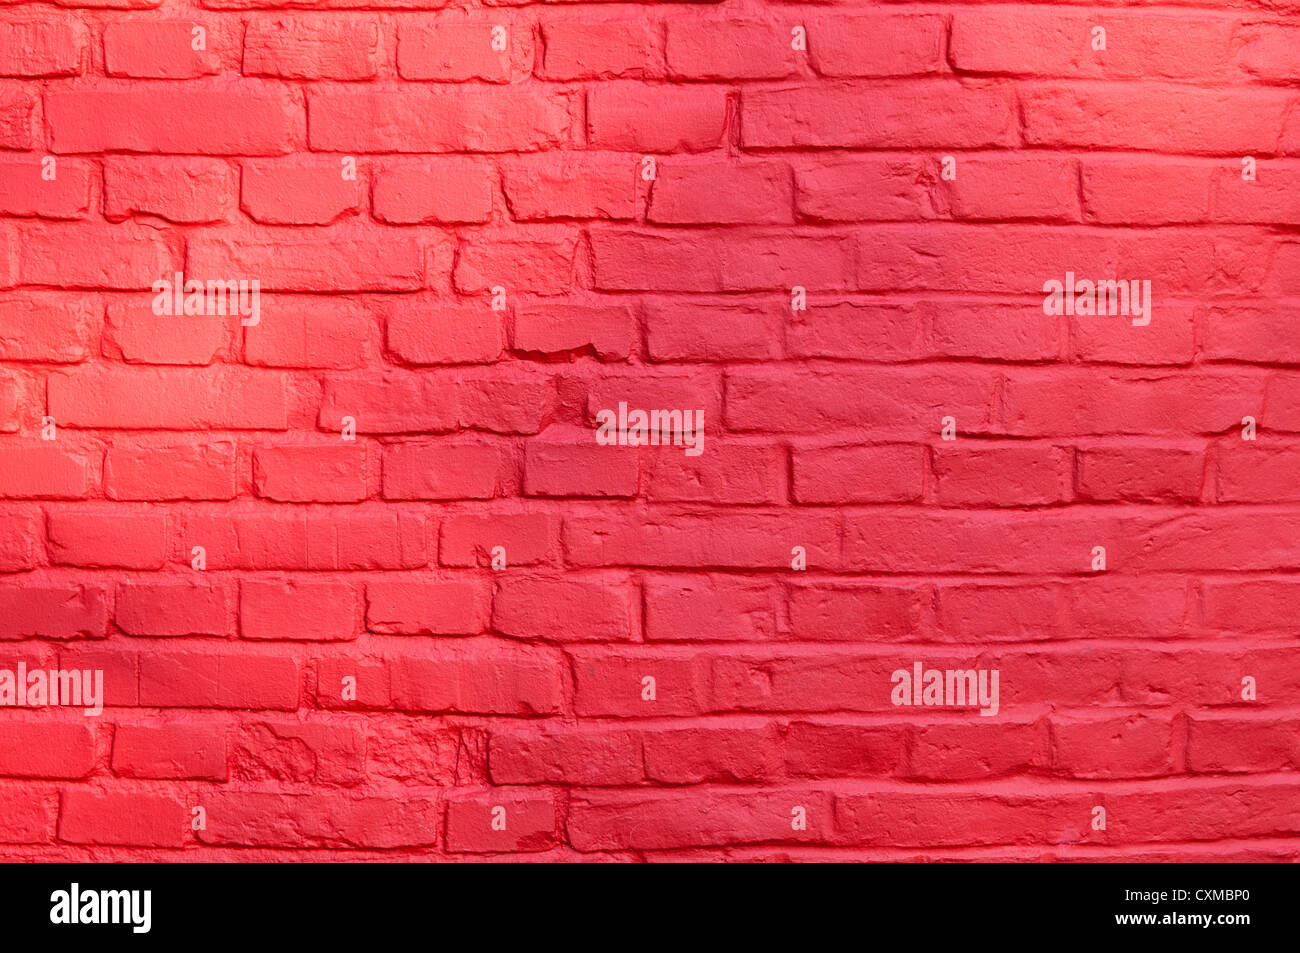 Stone texture - brick wall painted with red color. Stock Photo